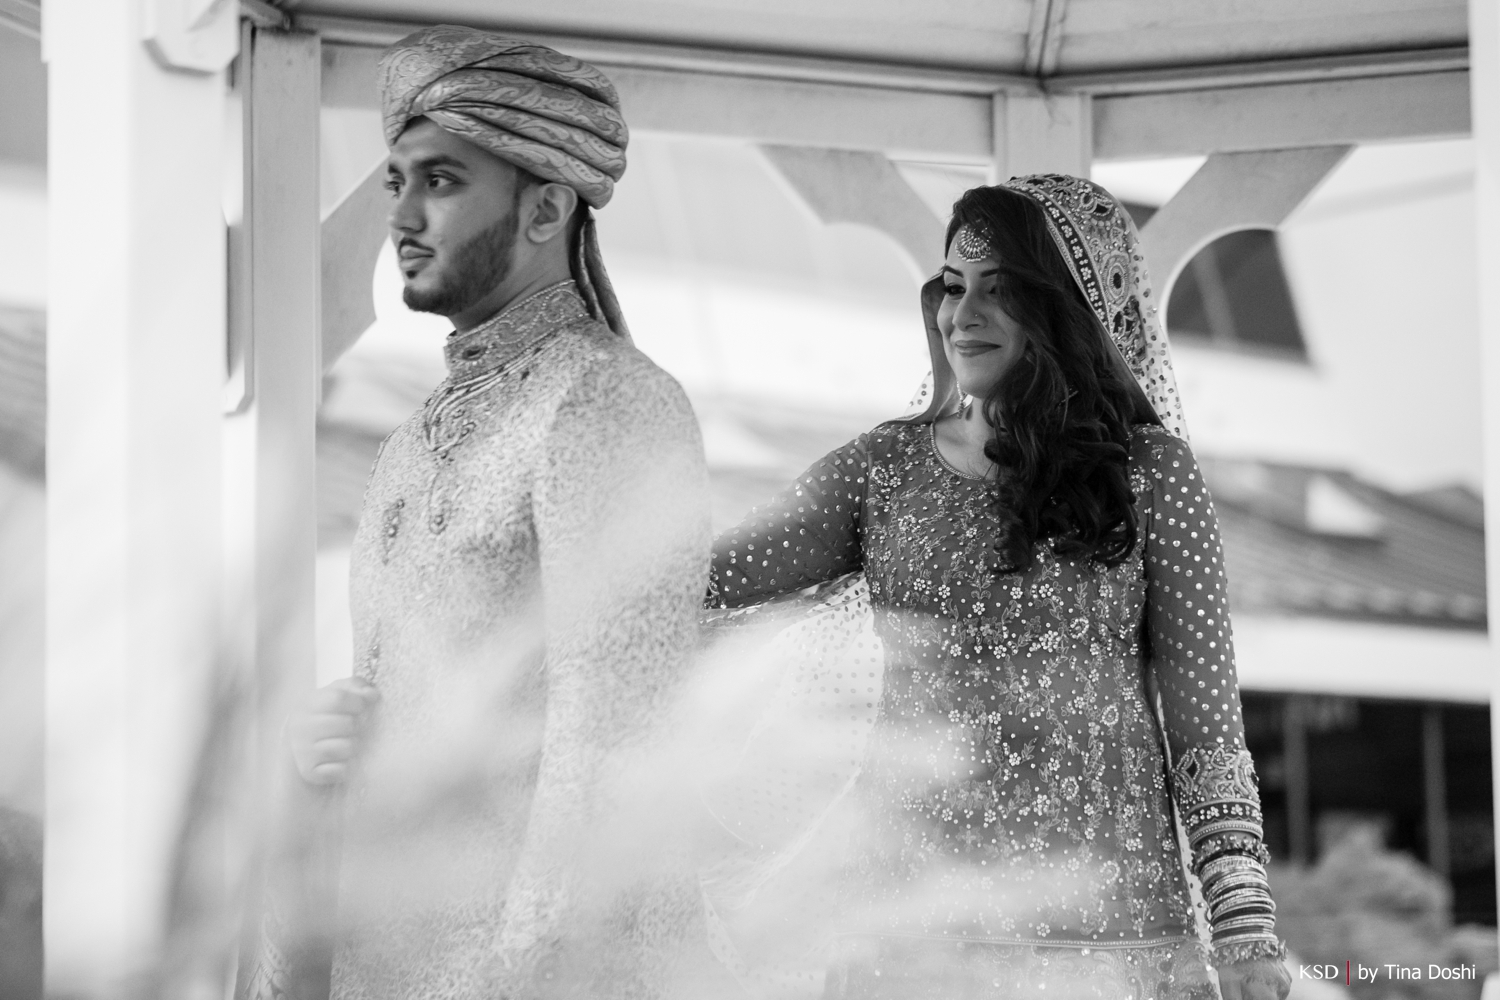 nj_south_asian_wedding_0017